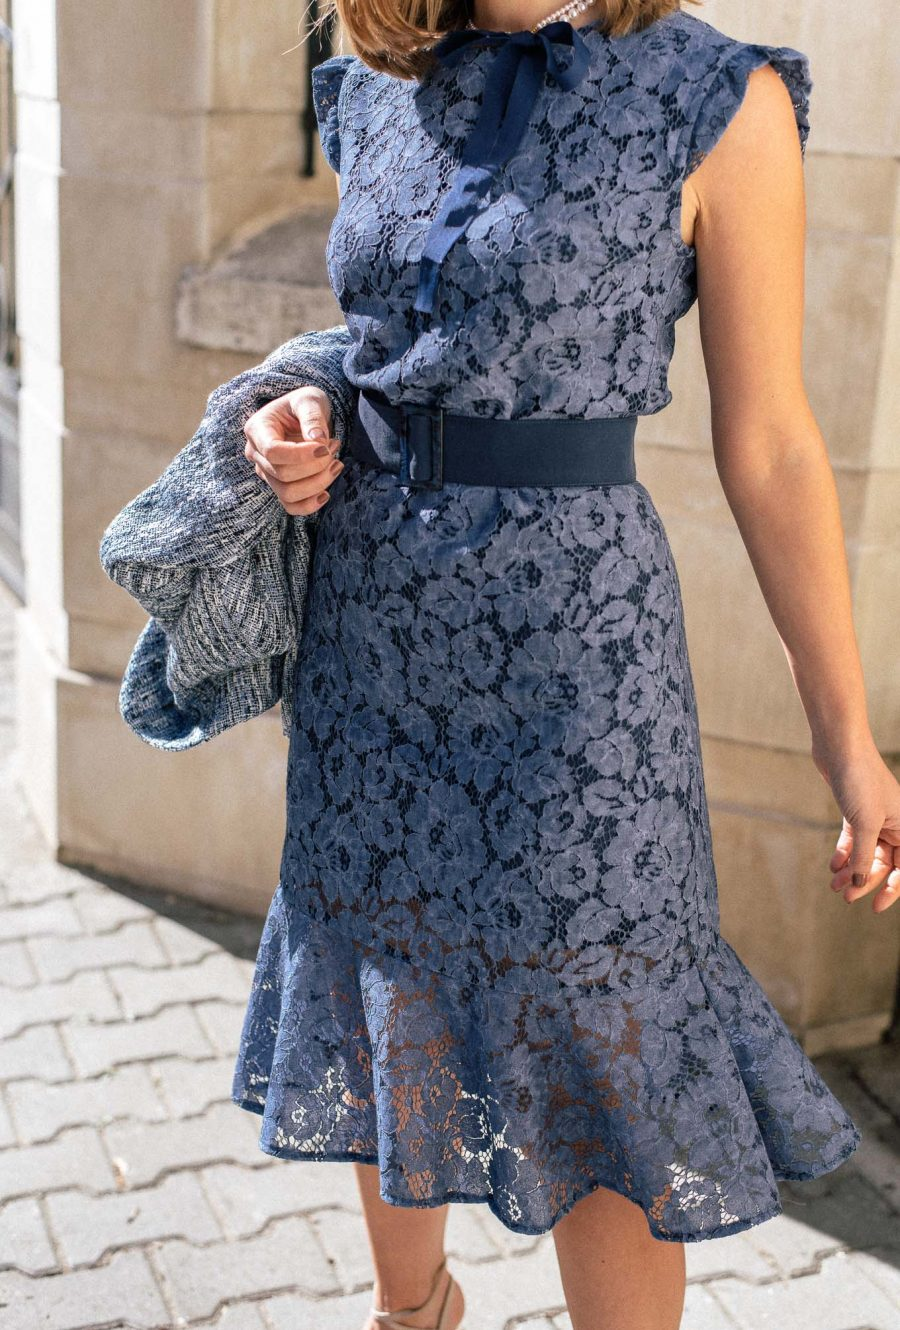 Lace dress from Denina Martin Collection